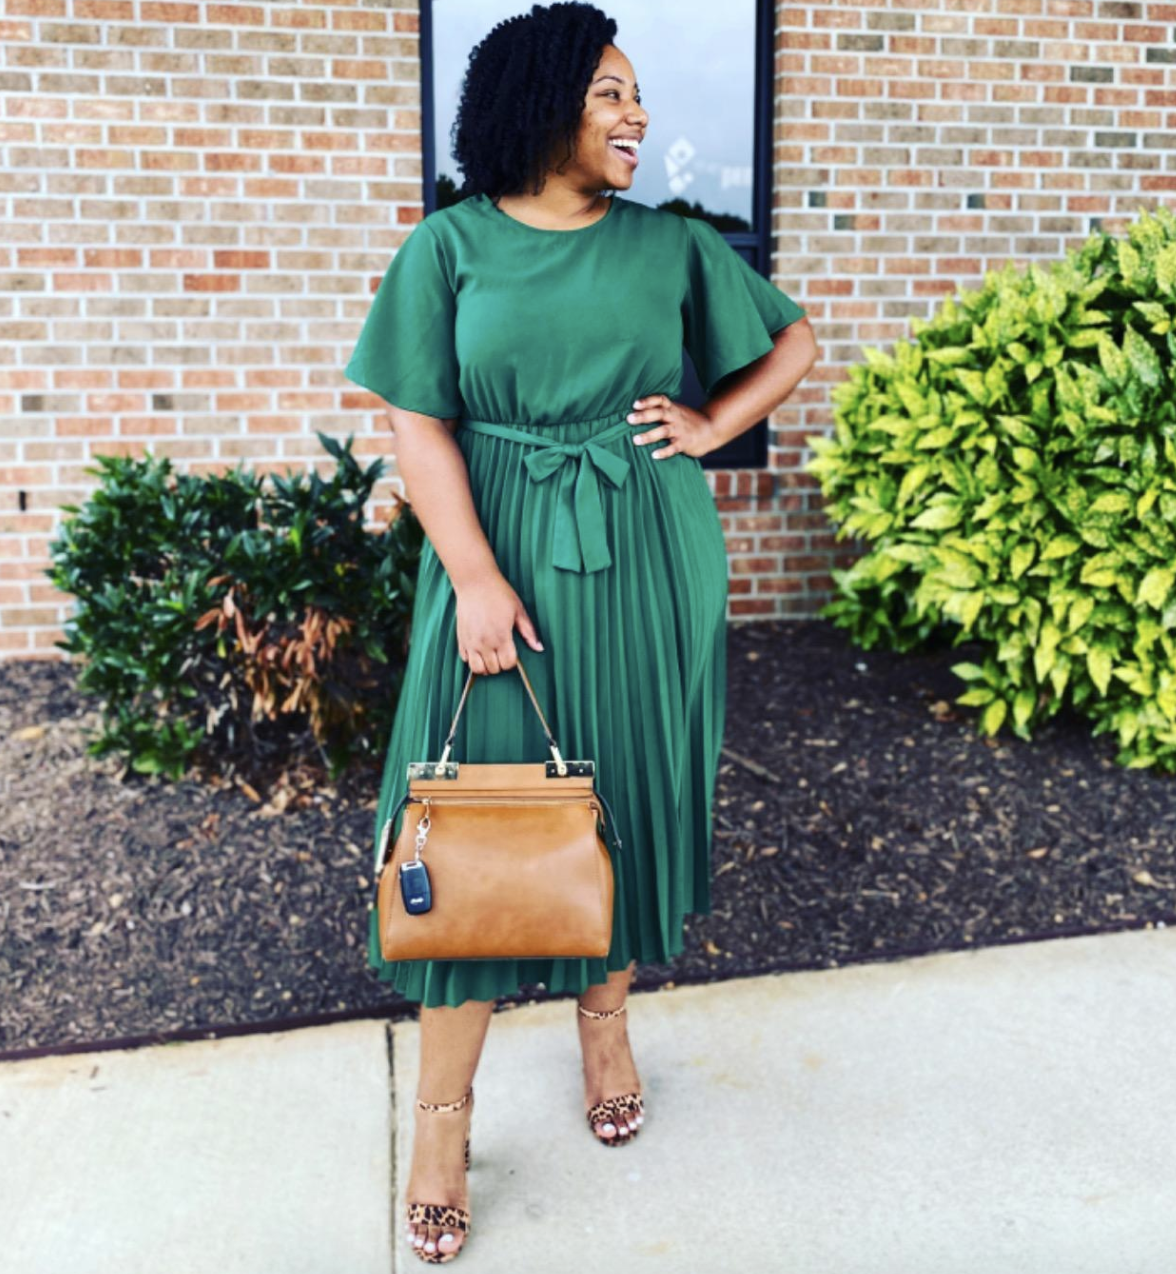 reviewer wearing the green belted dress